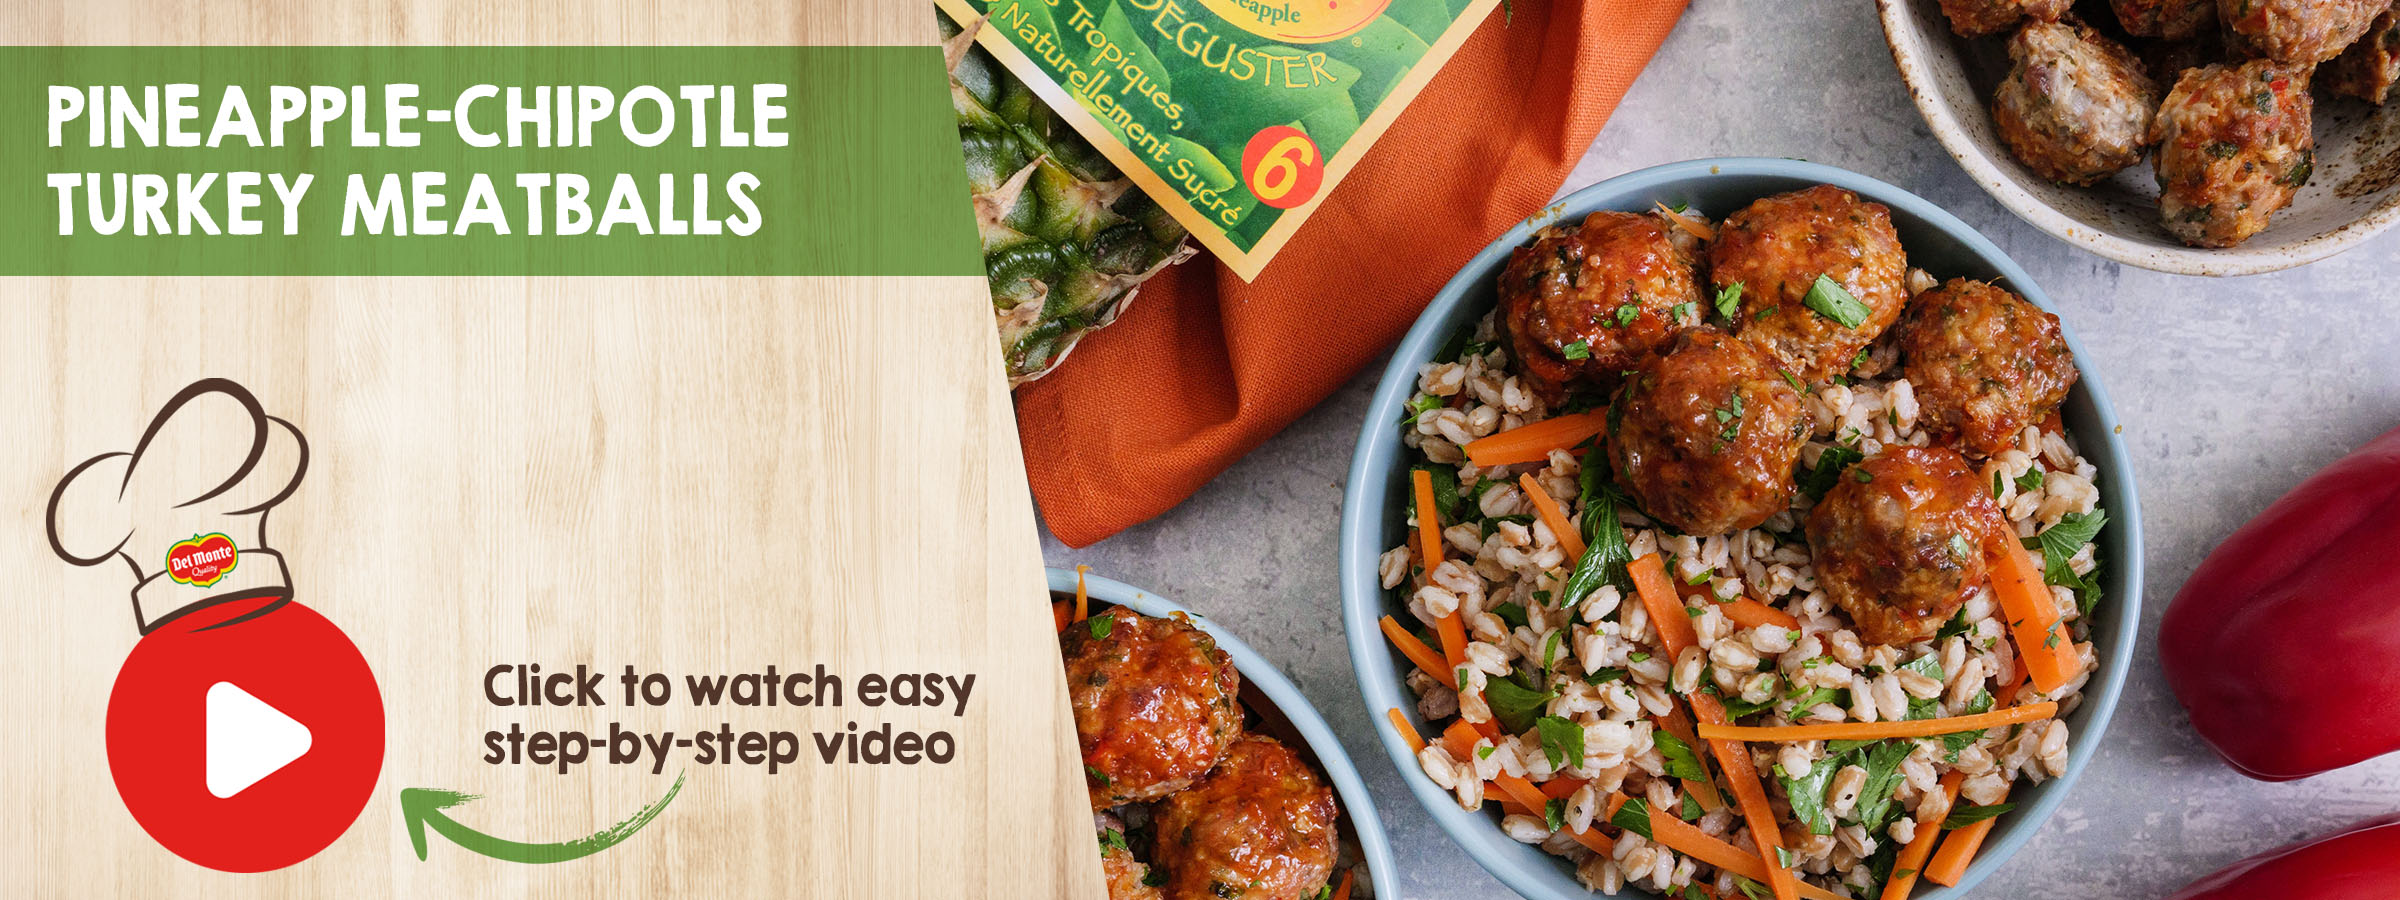 Homepage-Banner_Try-Our-Recipes_Pineapple-Chipotle-Turkey-Meatballs